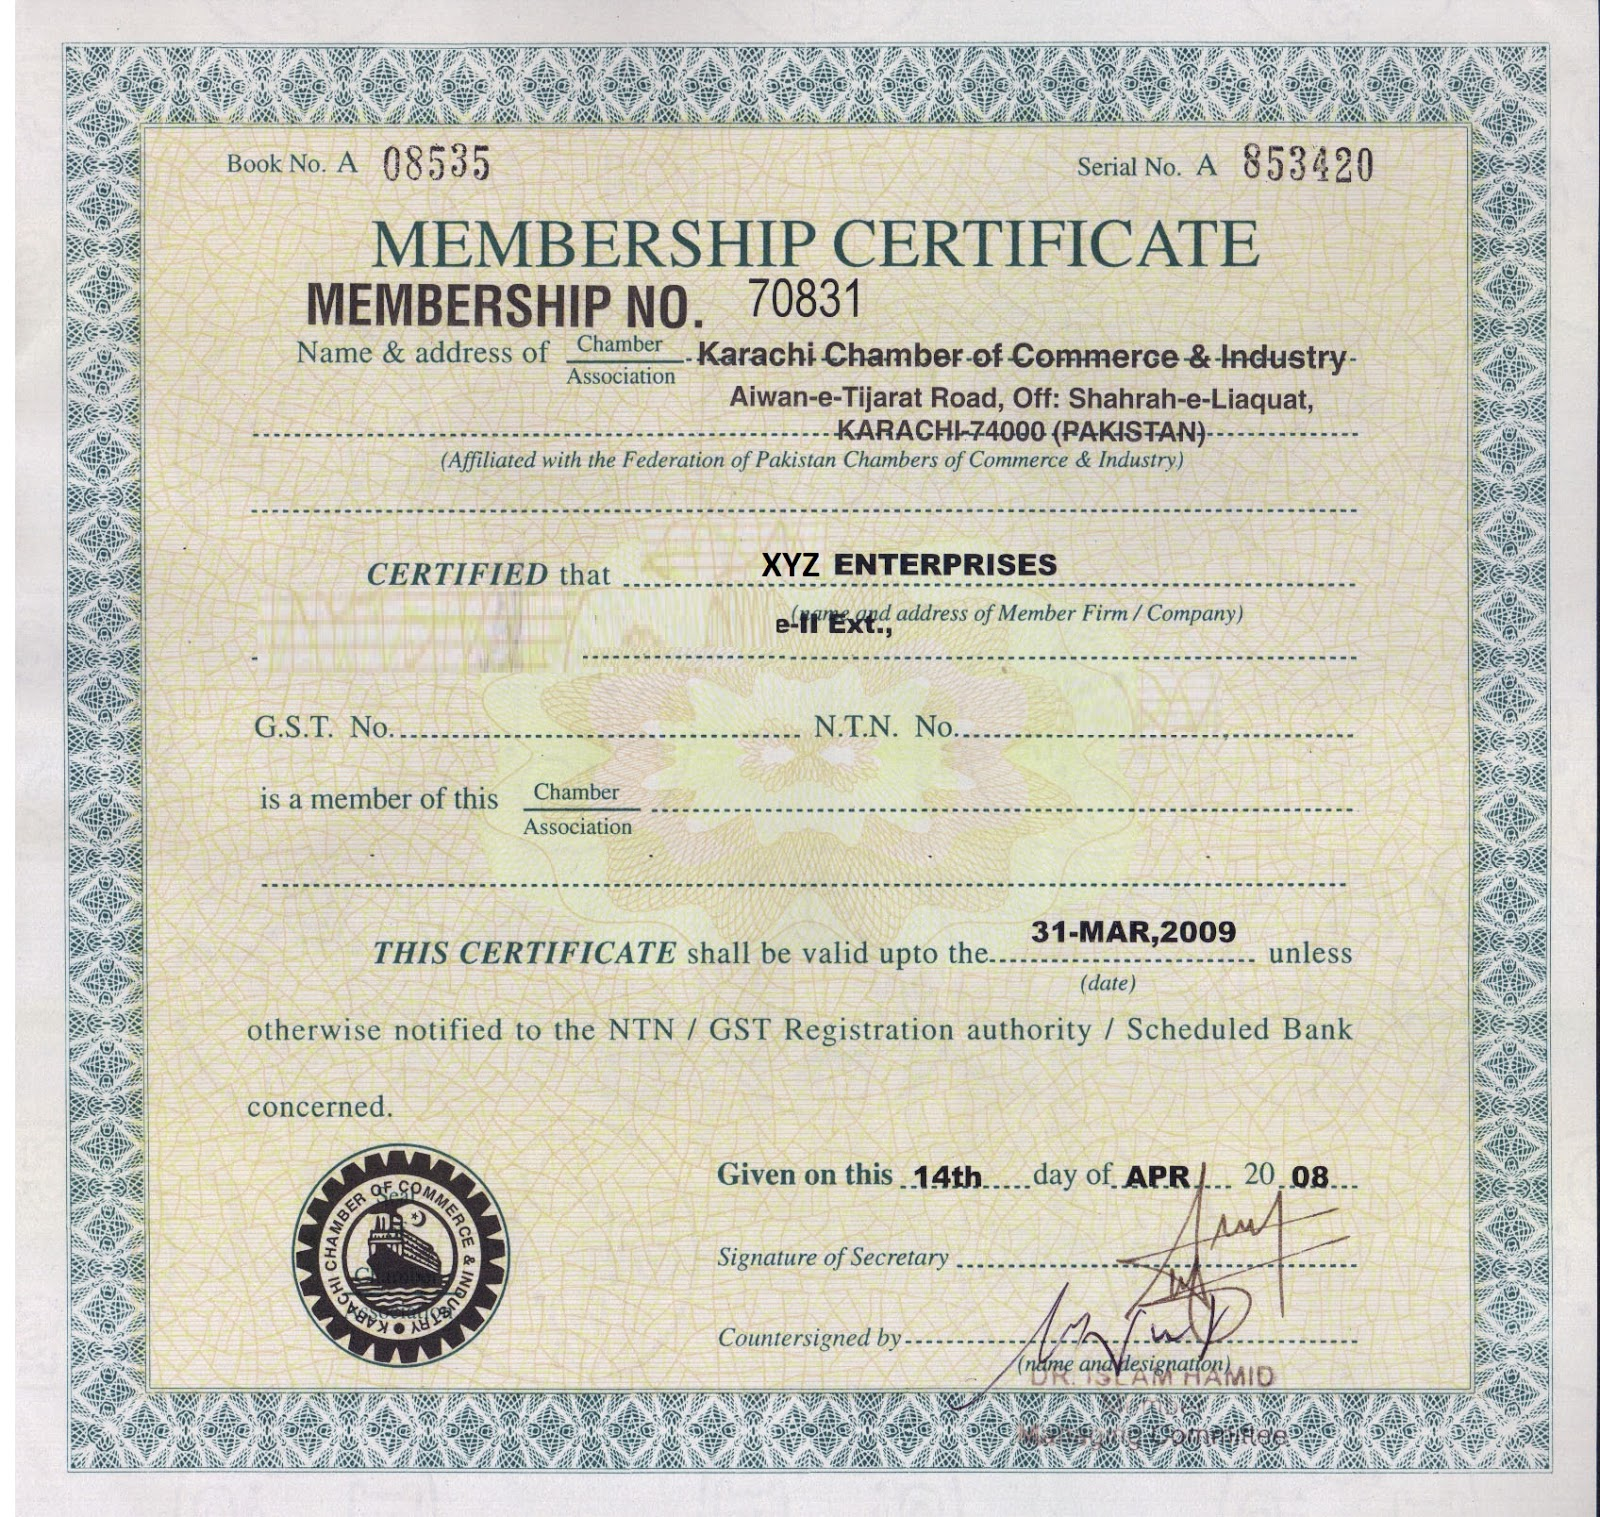 Arif ahmad how to apply for turkey turkish visa from pakistan ntn certificate yelopaper Image collections